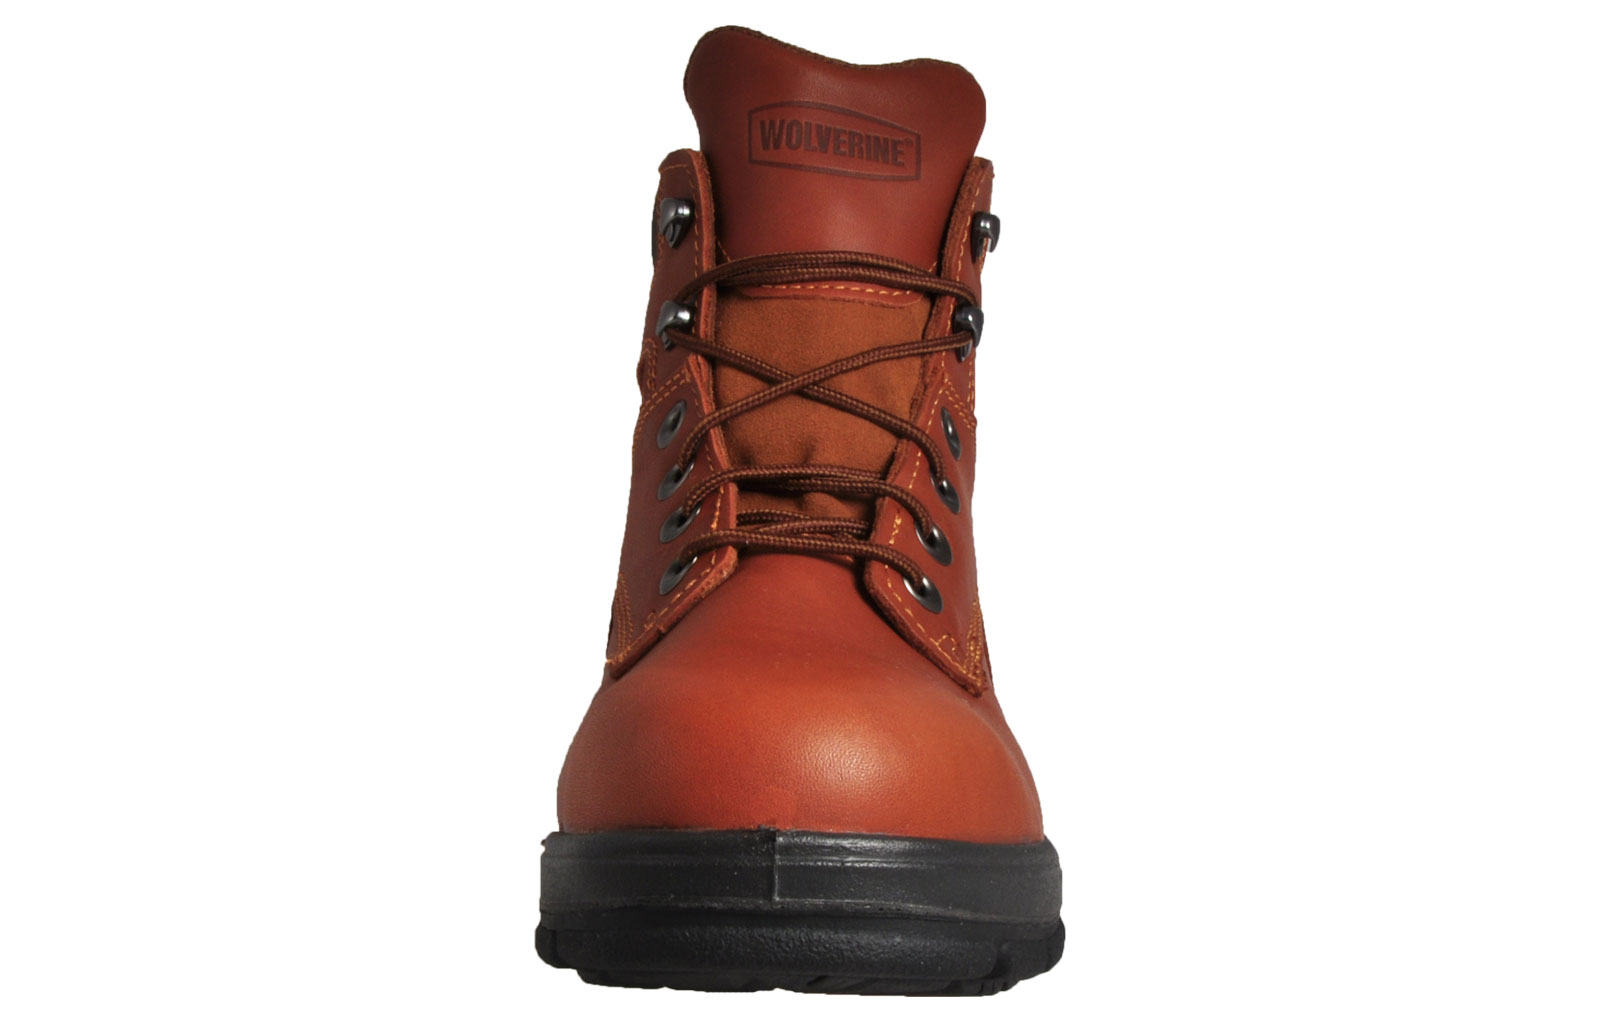 Clothing, Shoes & Accessories Boots Friendly Rock Fall Texas Ii Brown S3 Hro Composite Toe Cap Safety Rigger Boots Work Boots